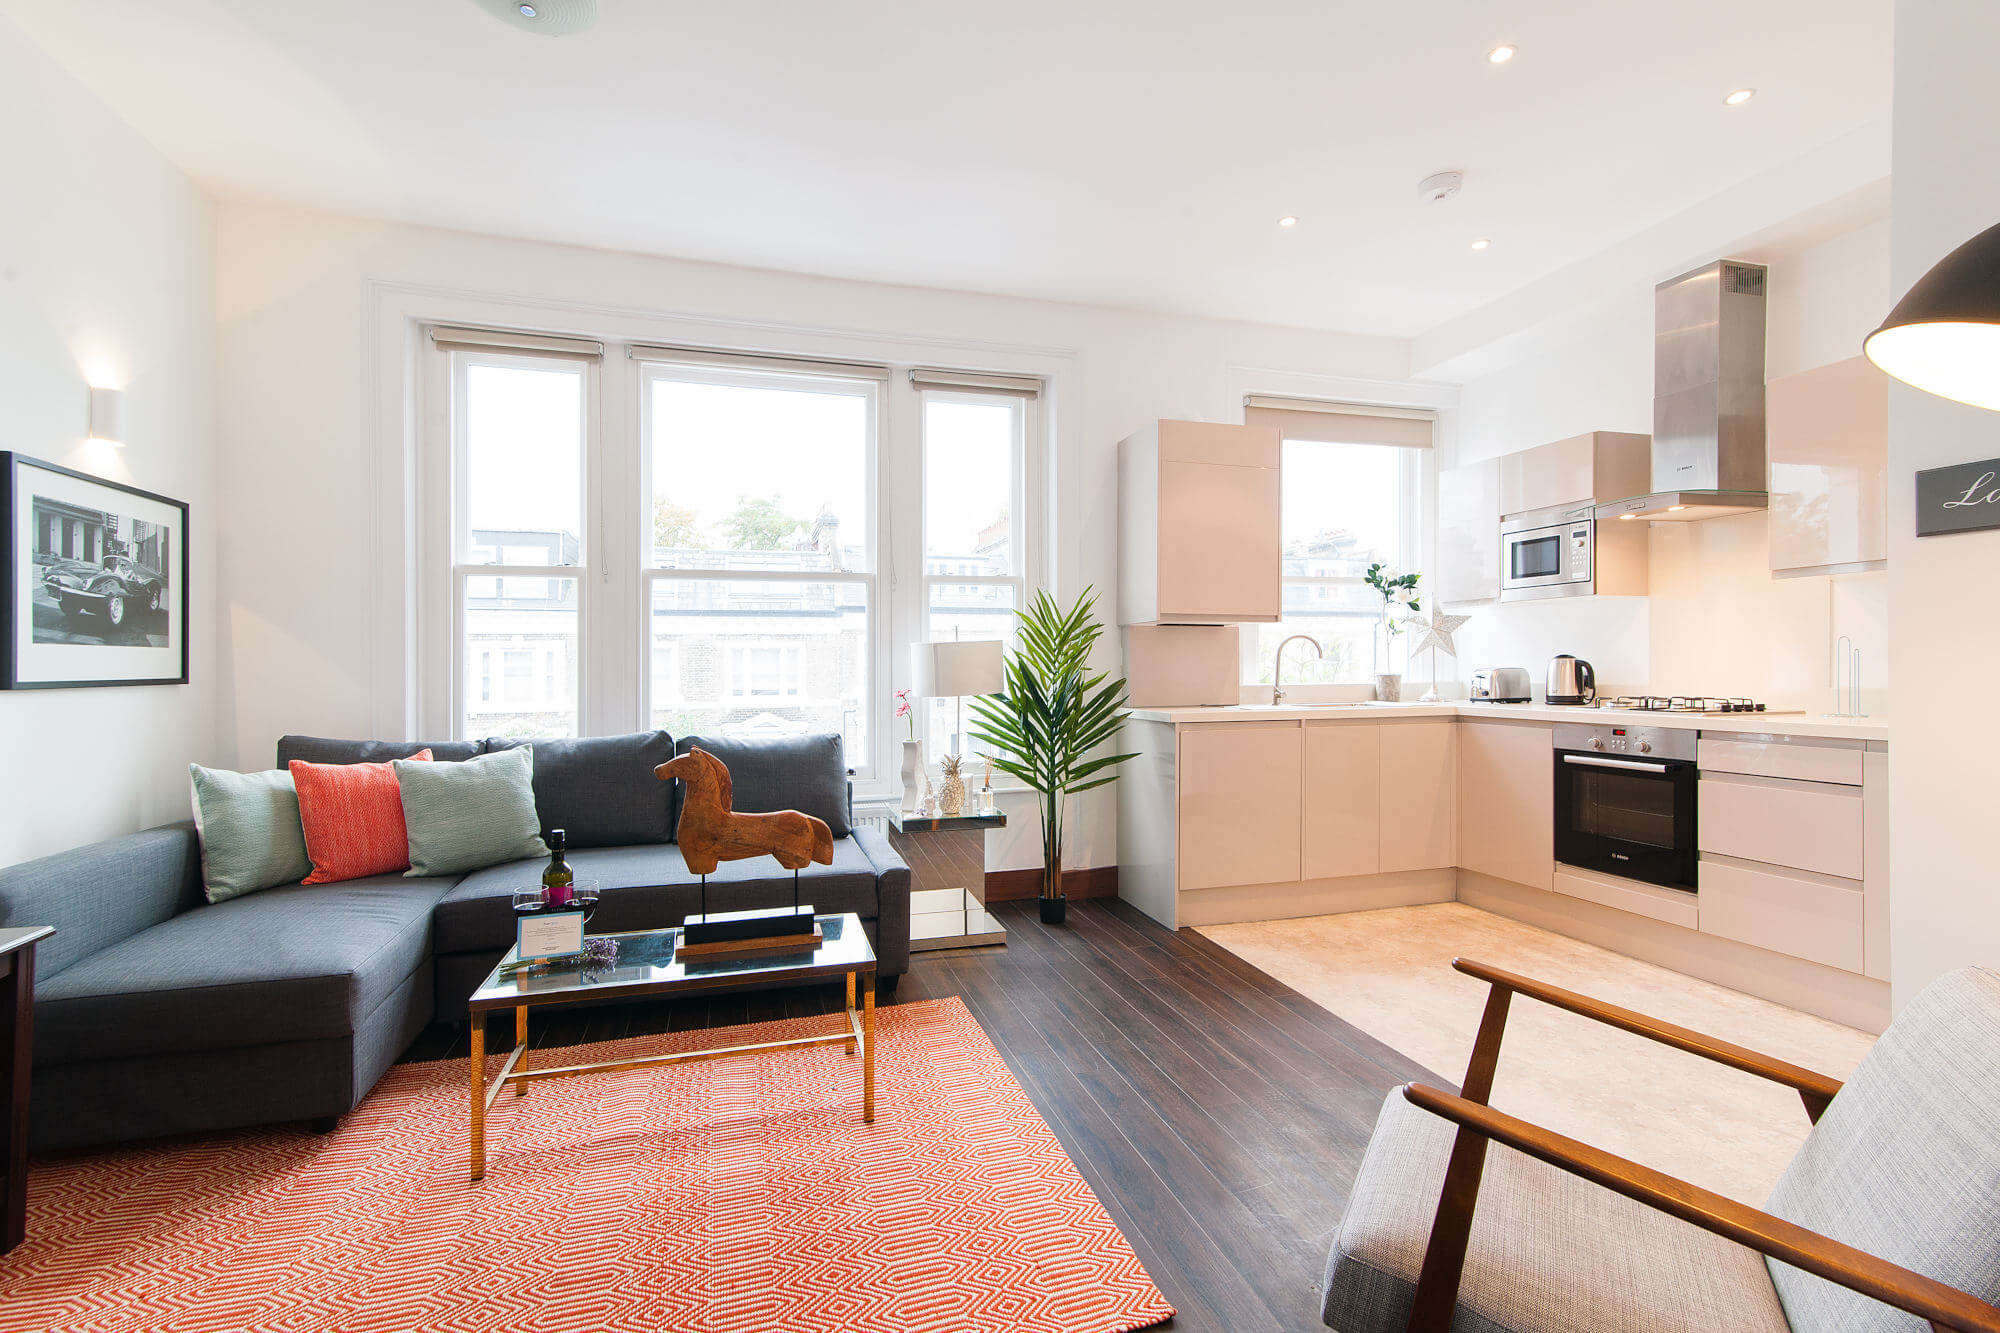 The Holland Road Residence II-living area-featured image - two bedroom apartment london